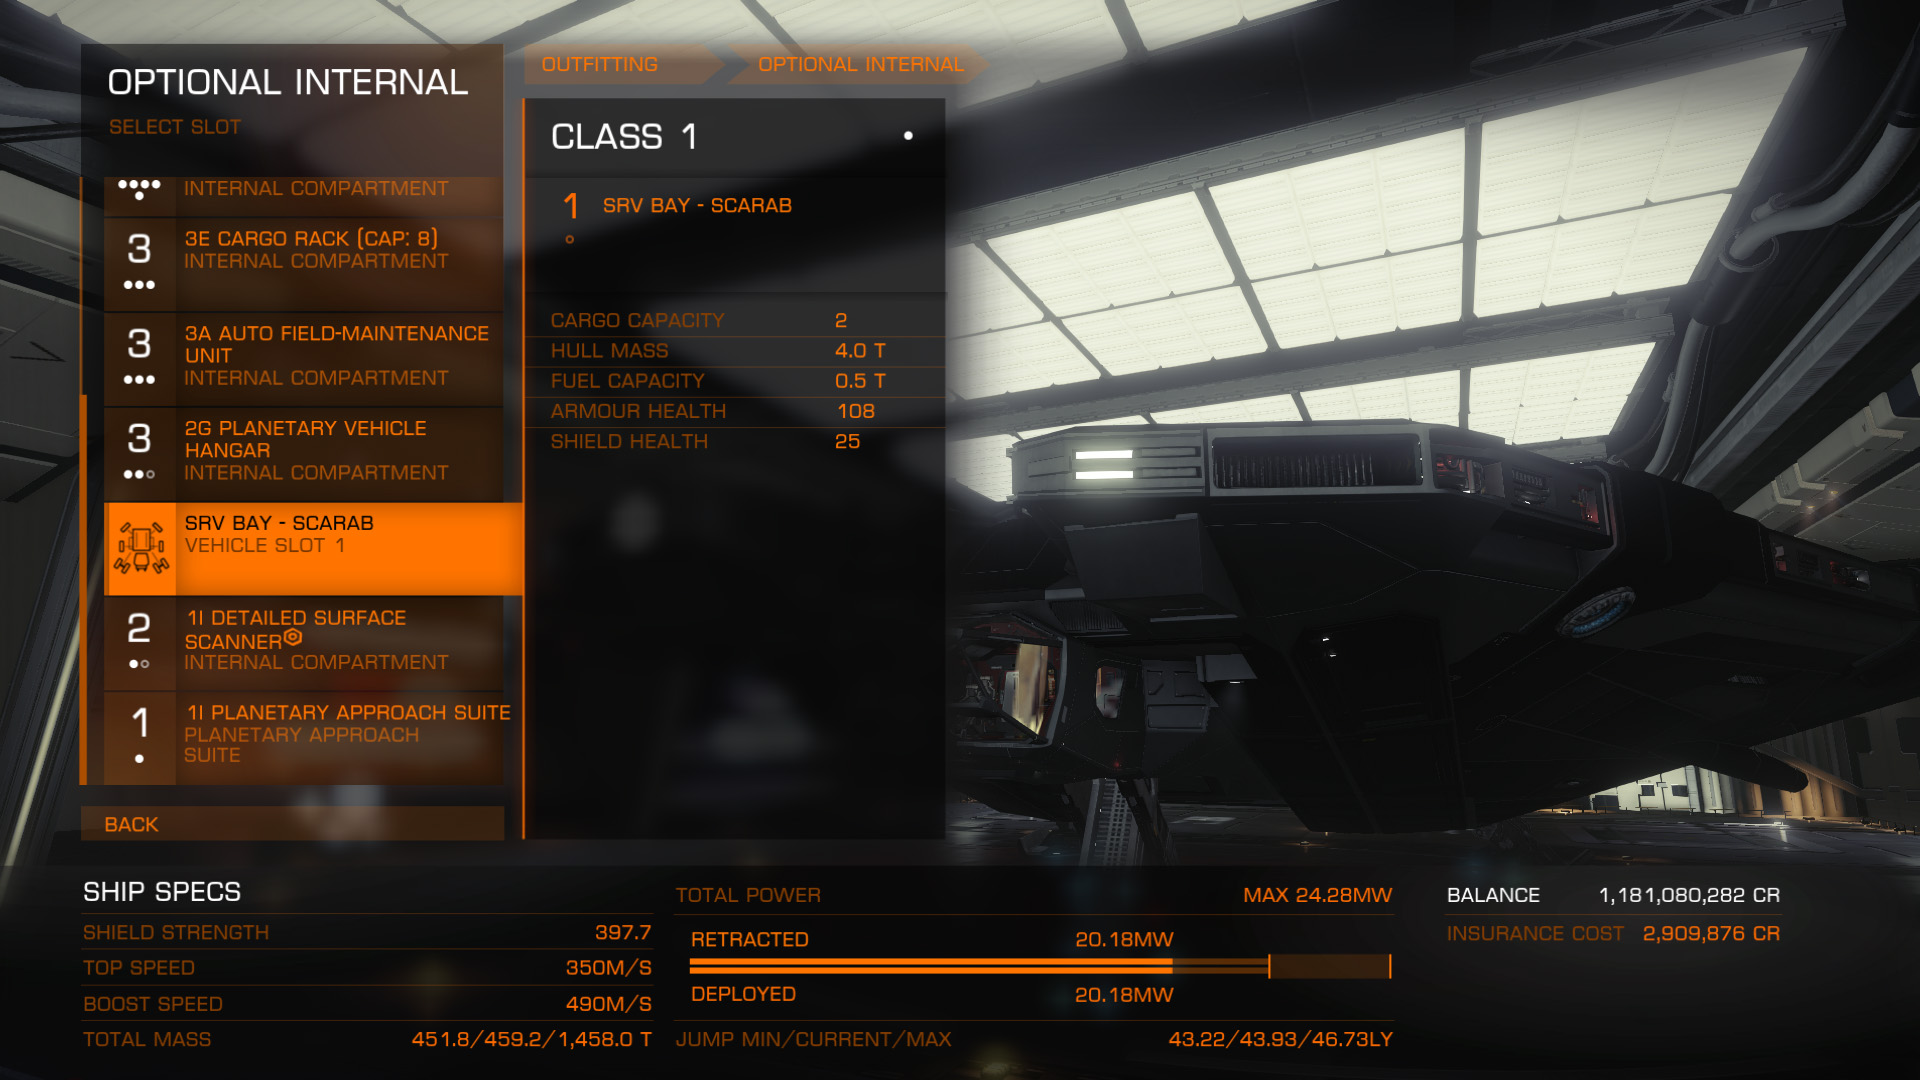 Buying an SRV from the outfitting menu